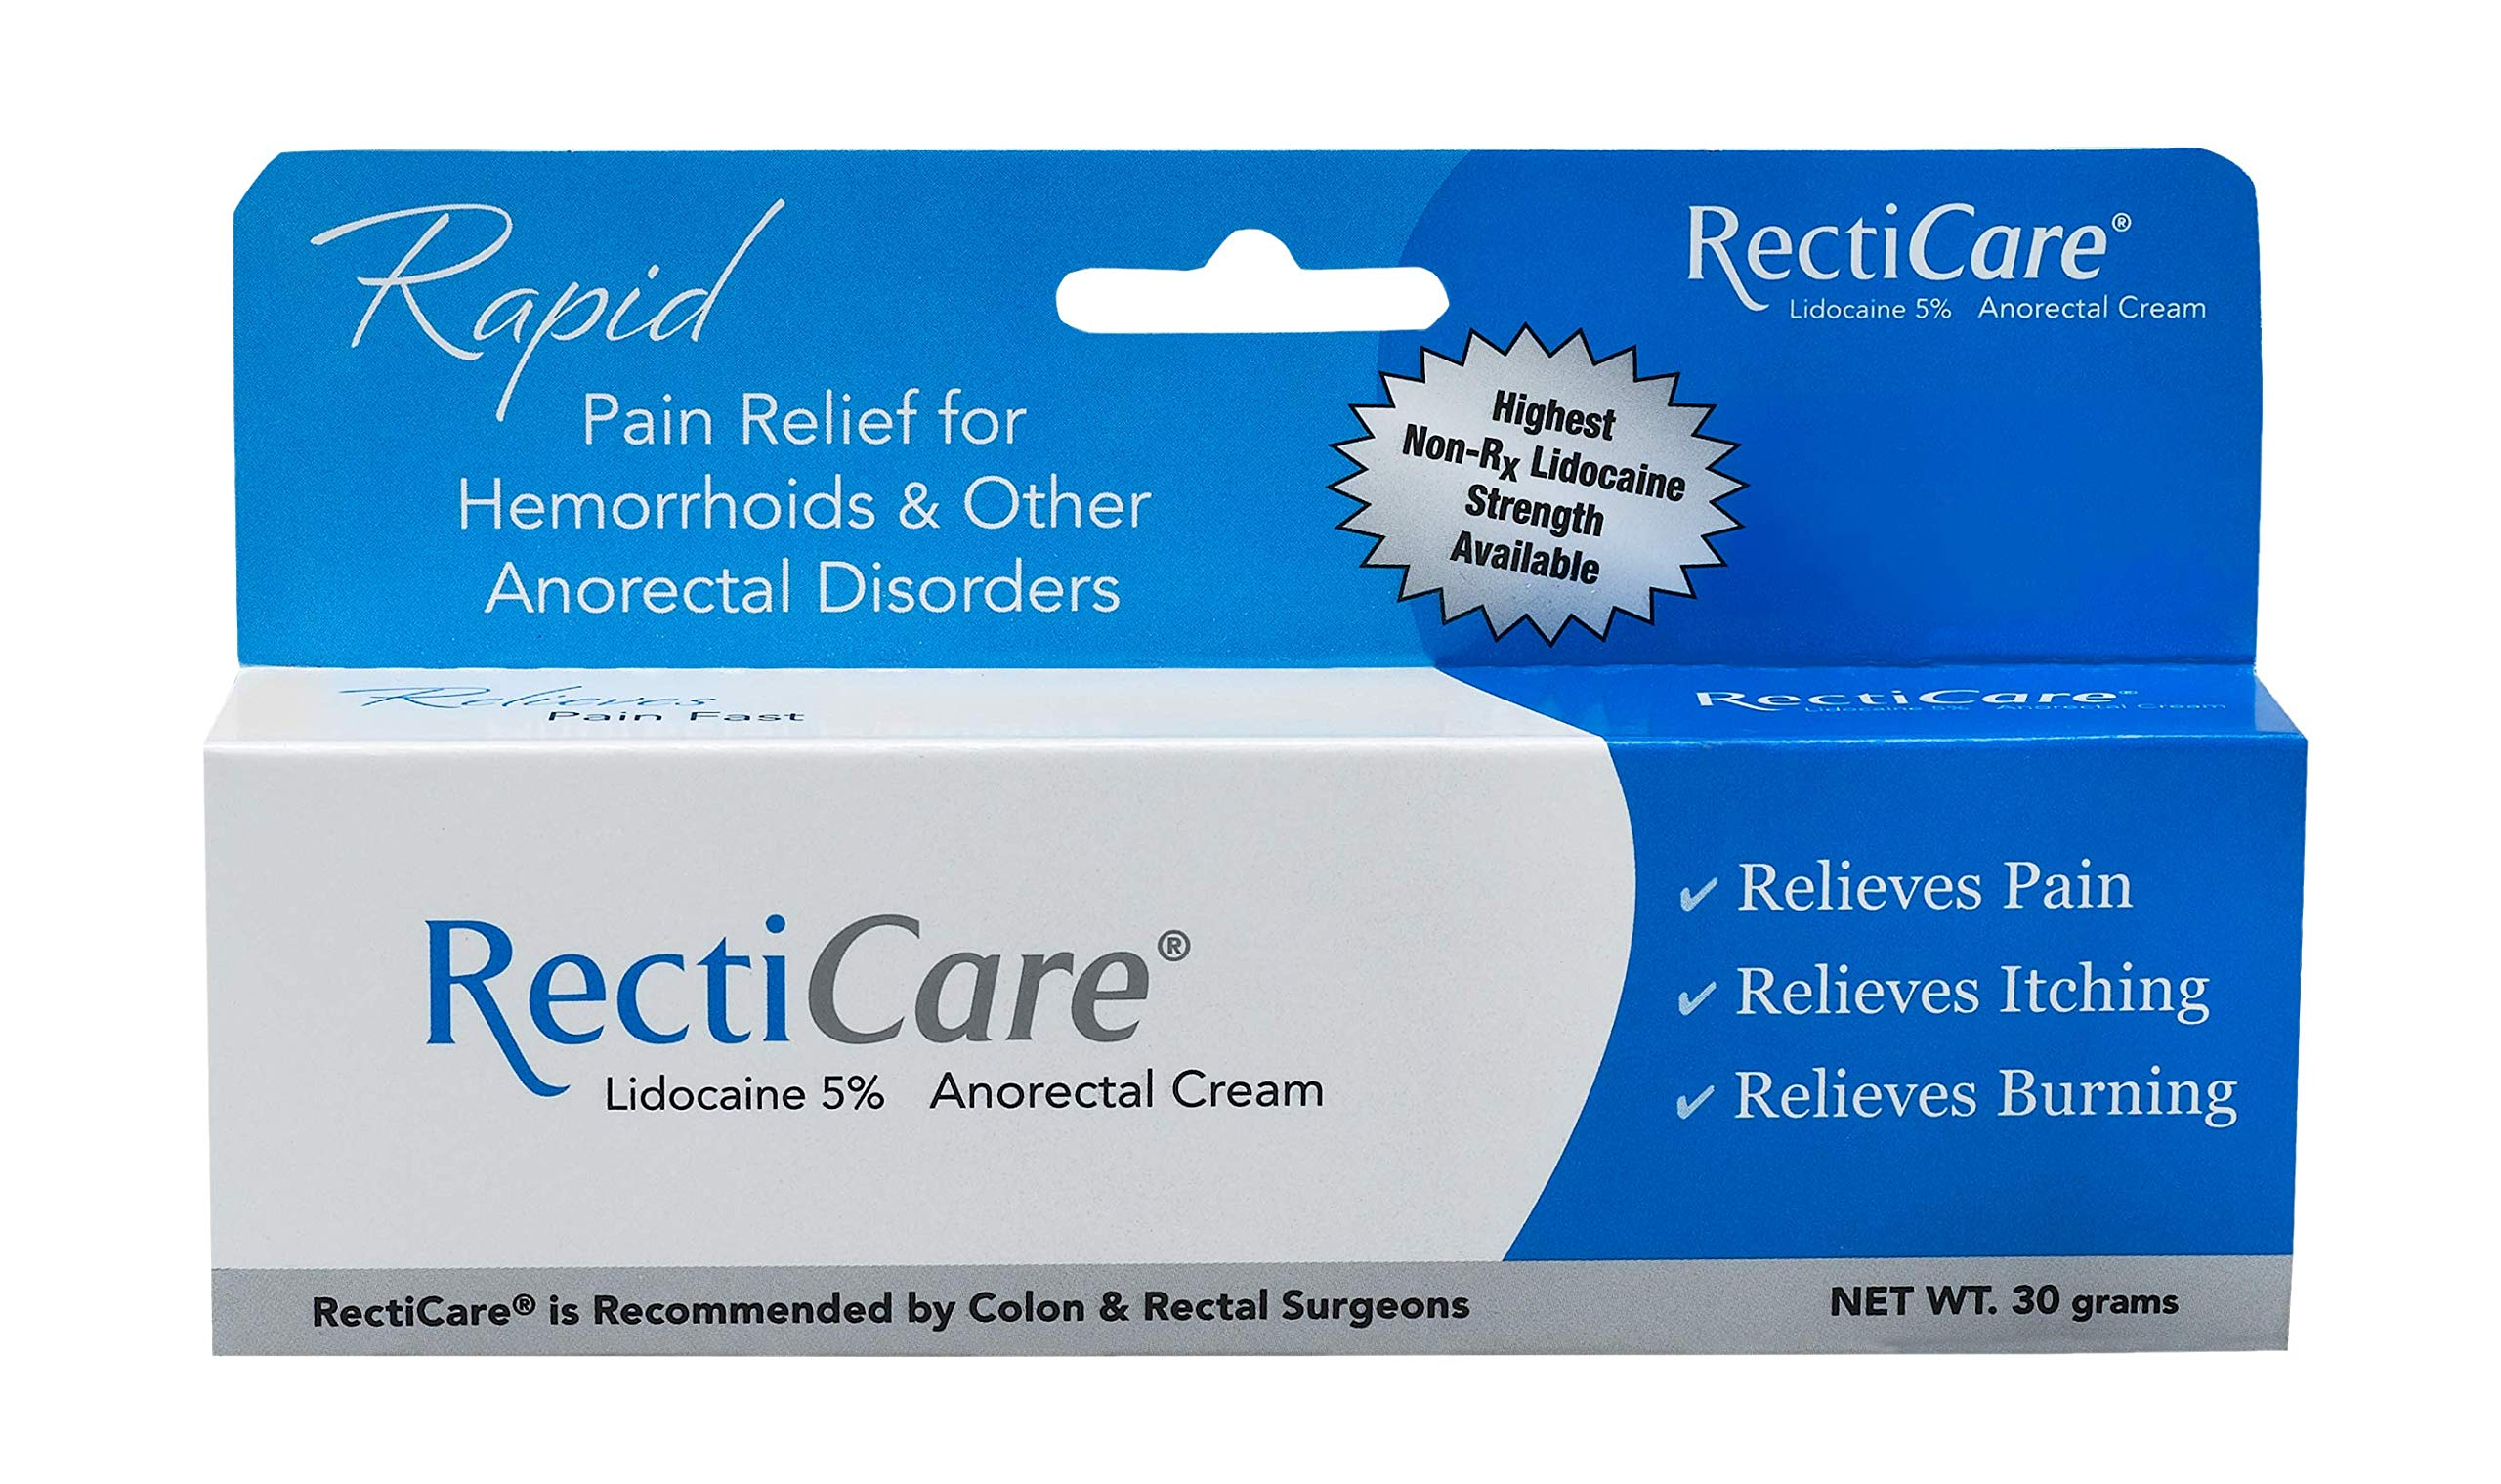 RectiCare Anorectal Lidocaine 5% Cream: Topical Numbing Cream for Treatment of Hemorrhoids & Other Anorectal Disorders - 30g Tube by Recticare